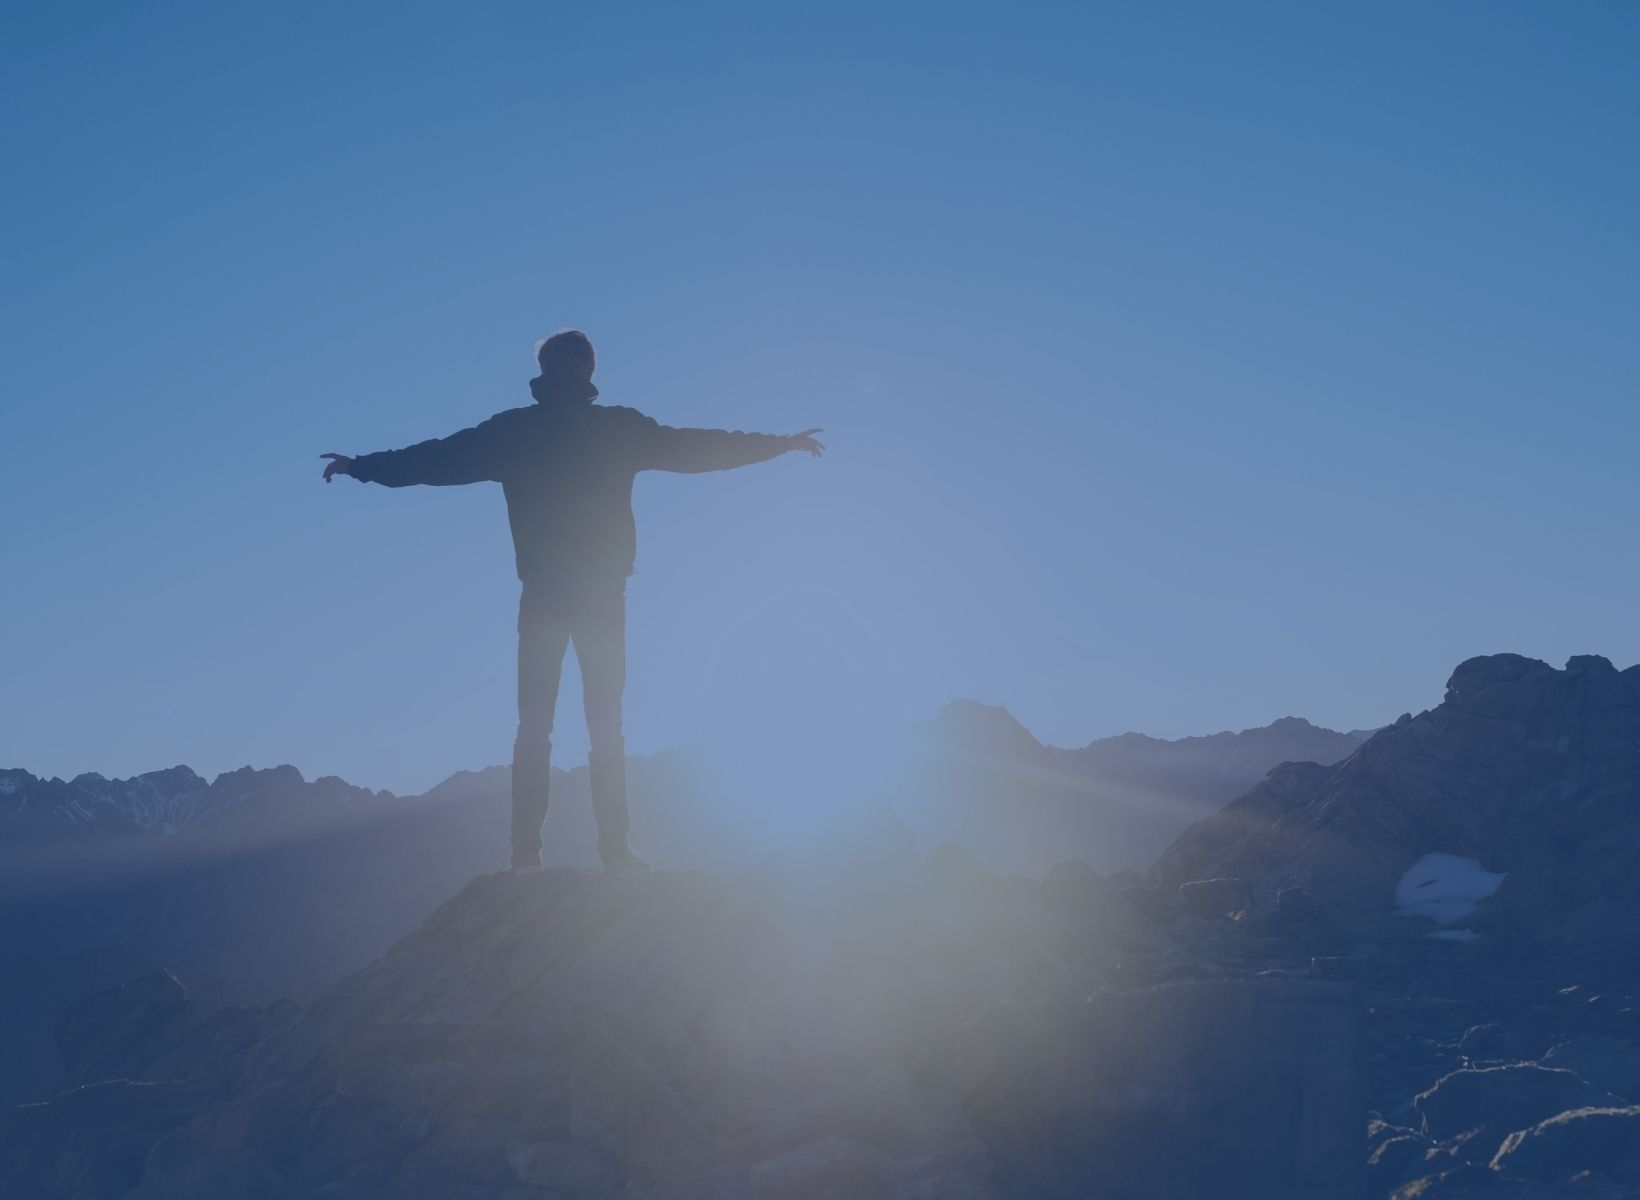 man standing on a hilltop with his arms outstretched, looking at the sunrise